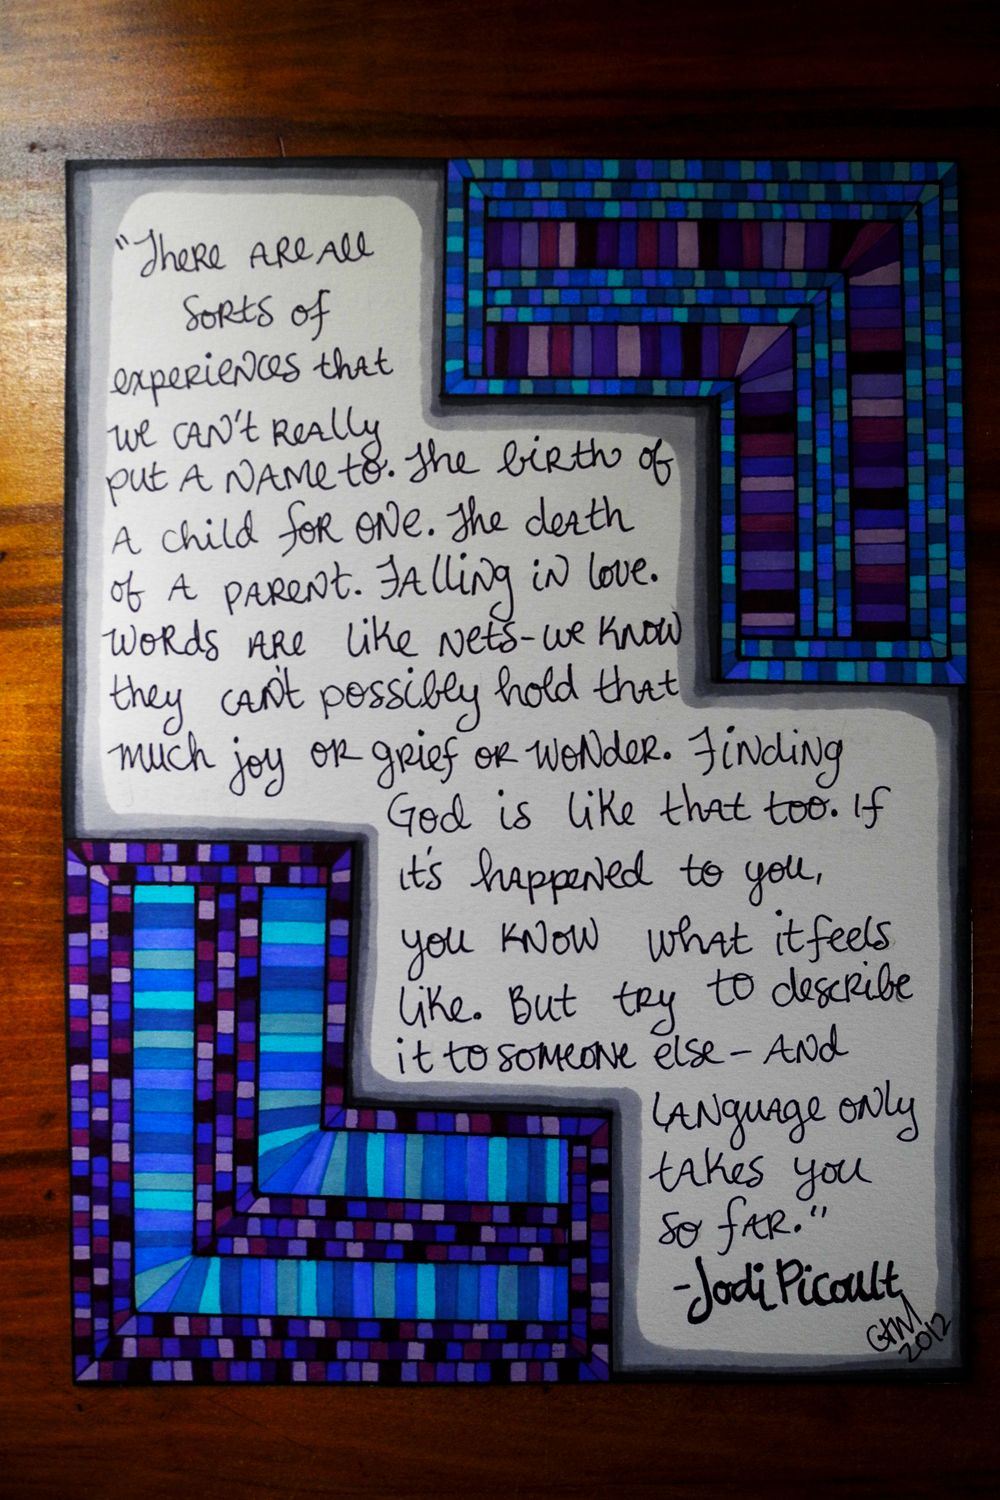 More quote drawings of the geometric variety sew collision